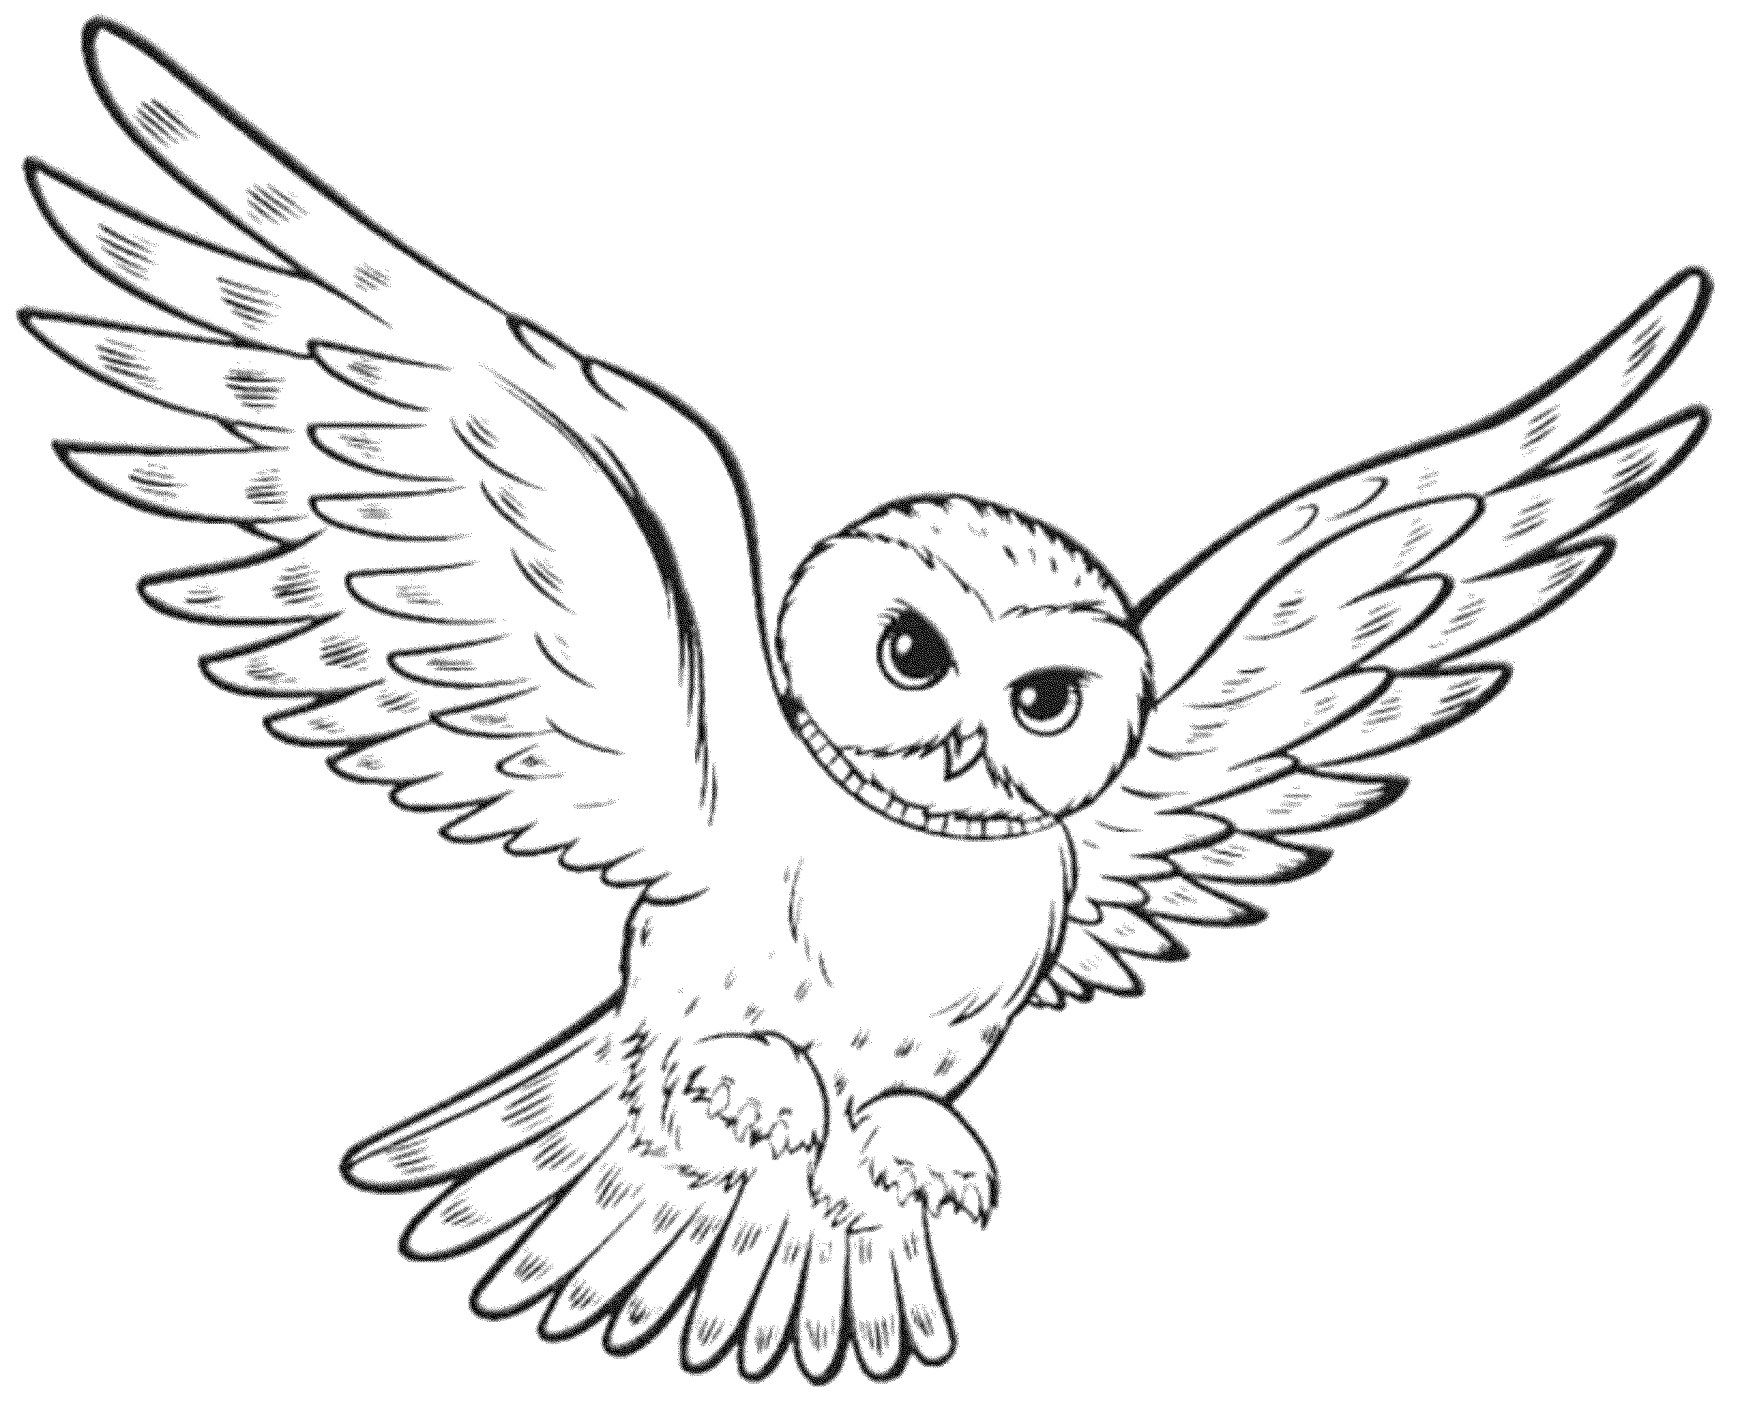 Owls Coloring Pages Owls Coloring Pages Print Download Owl For Your Kids 25512066 Davemelillo Com In 2020 Owl Coloring Pages Animal Coloring Pages Cute Coloring Pages